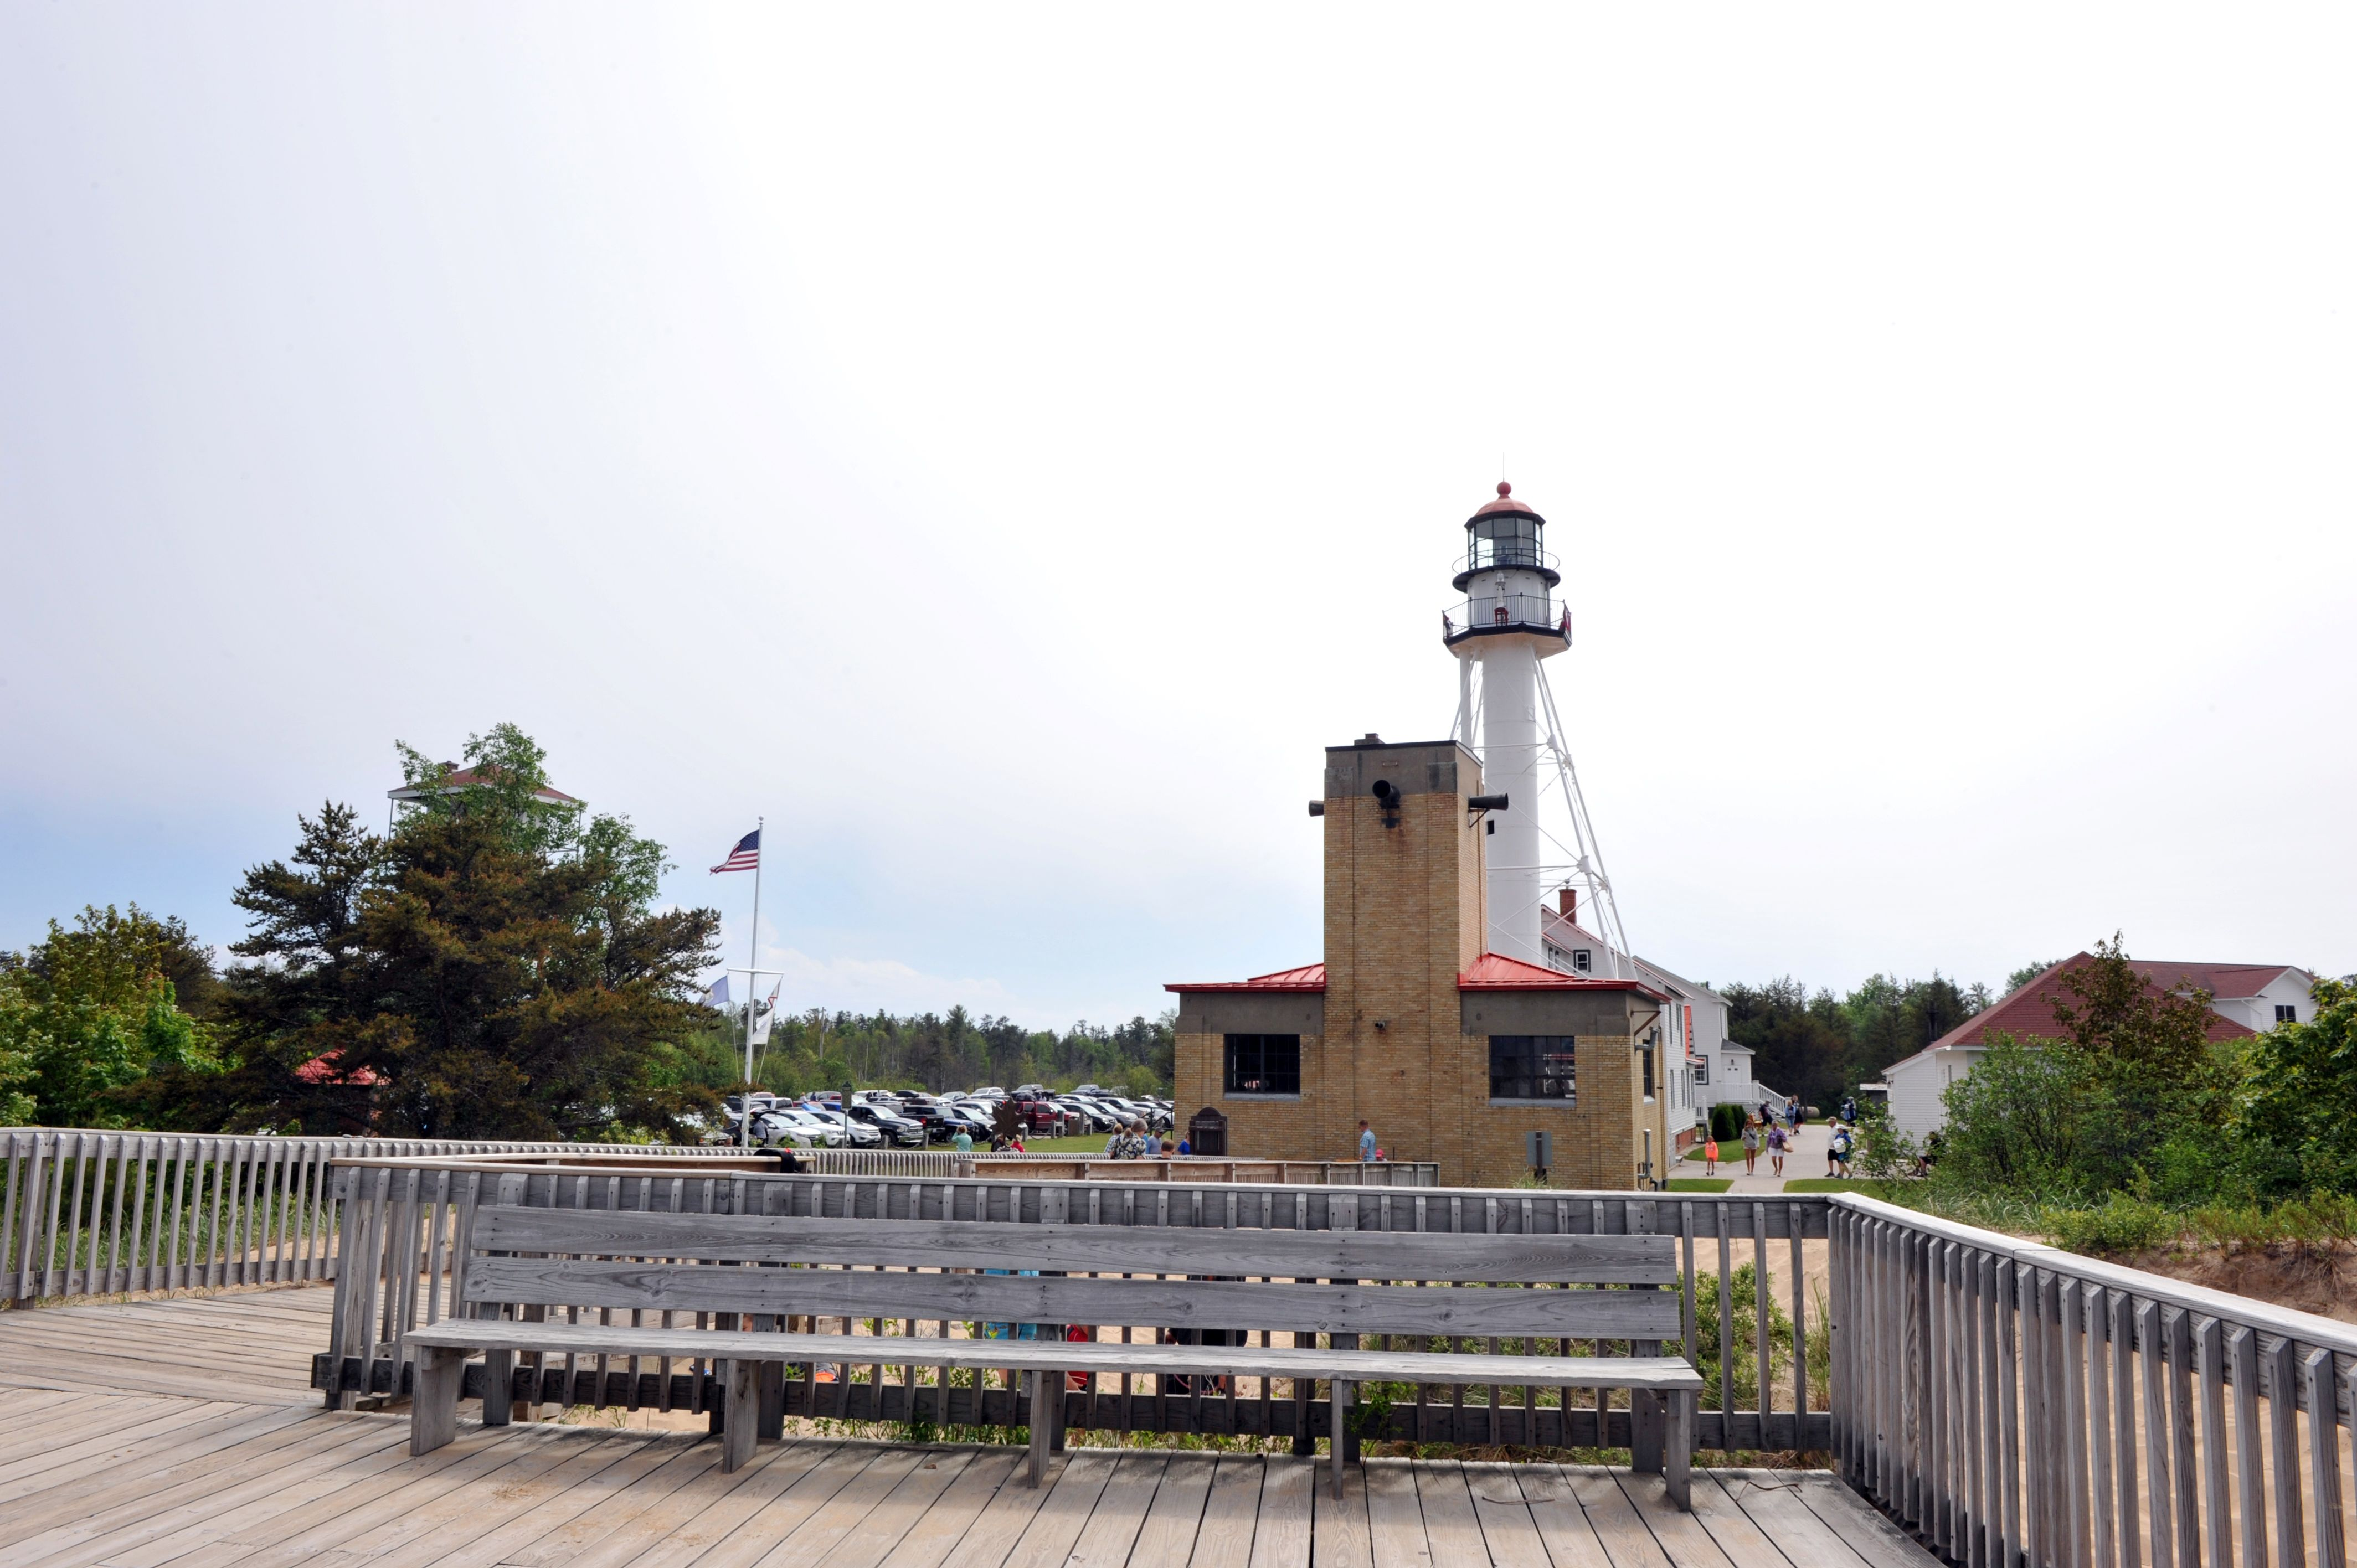 Boardwalk on the Great Lakes Shipwreck Museum and Whitefish Point Light Station